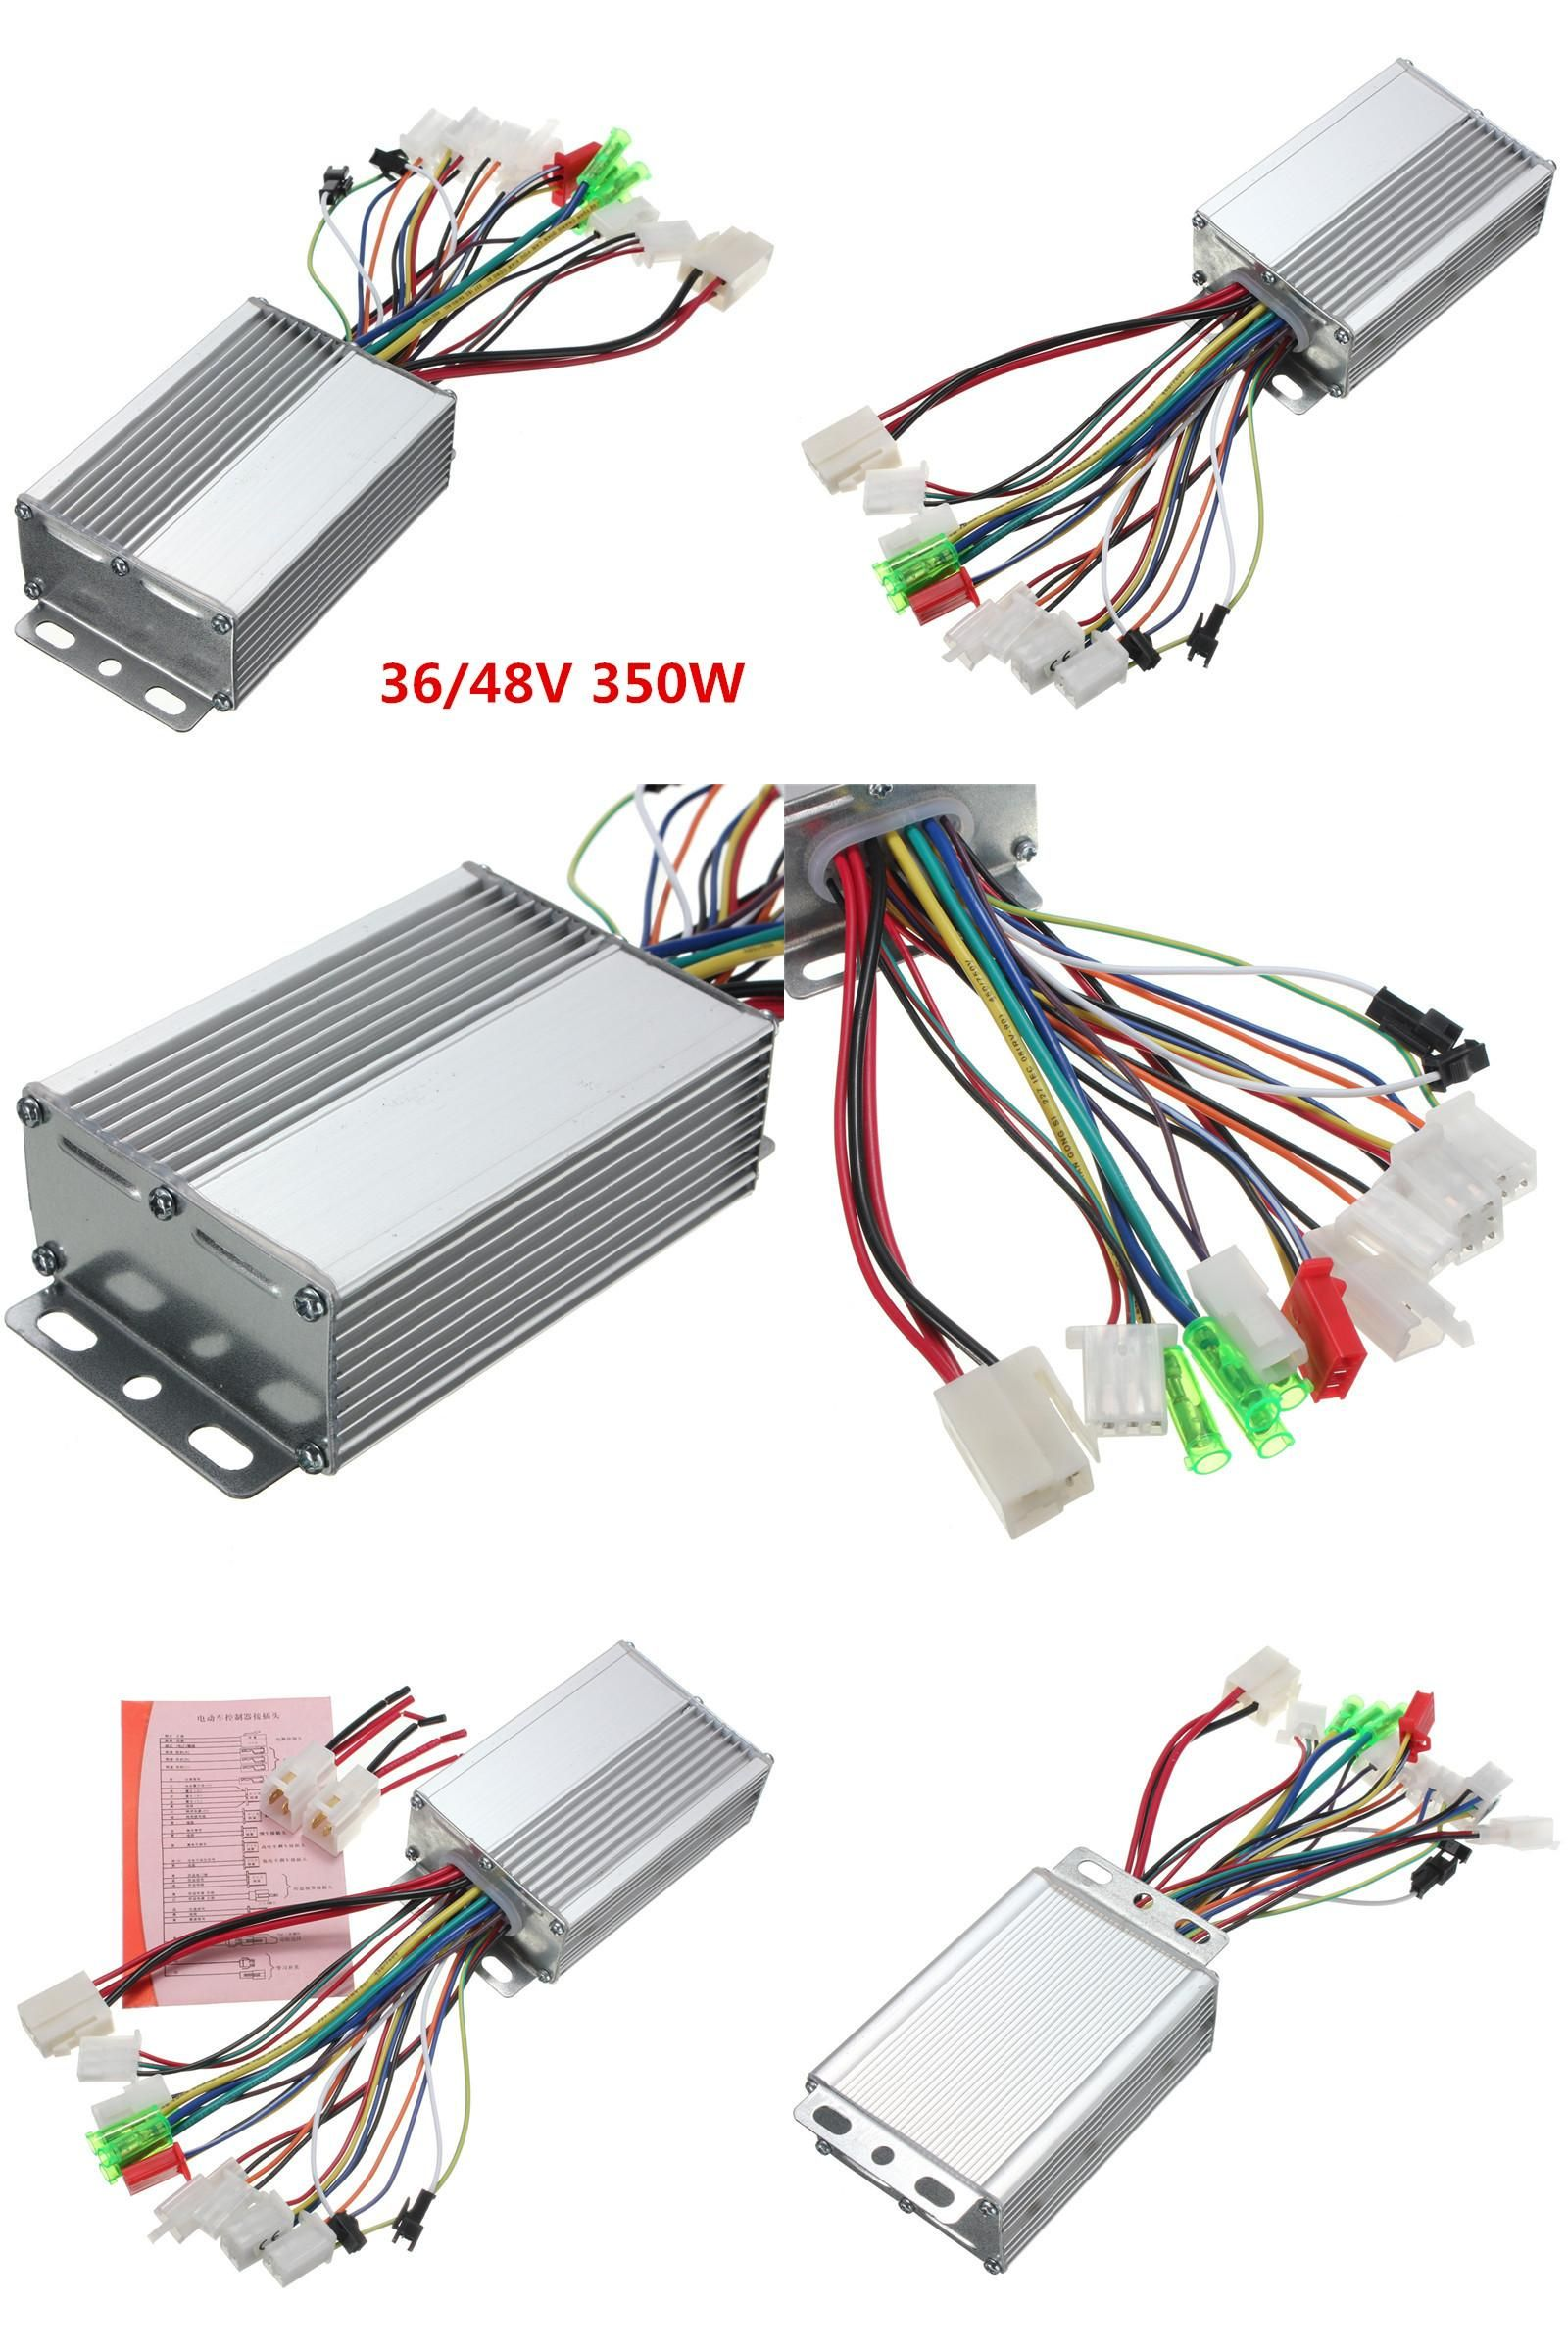 Visit To Buy 36v 48v 350w Brushless Motor Controller For Electric Home Wiring An Car Vehicle Scooter